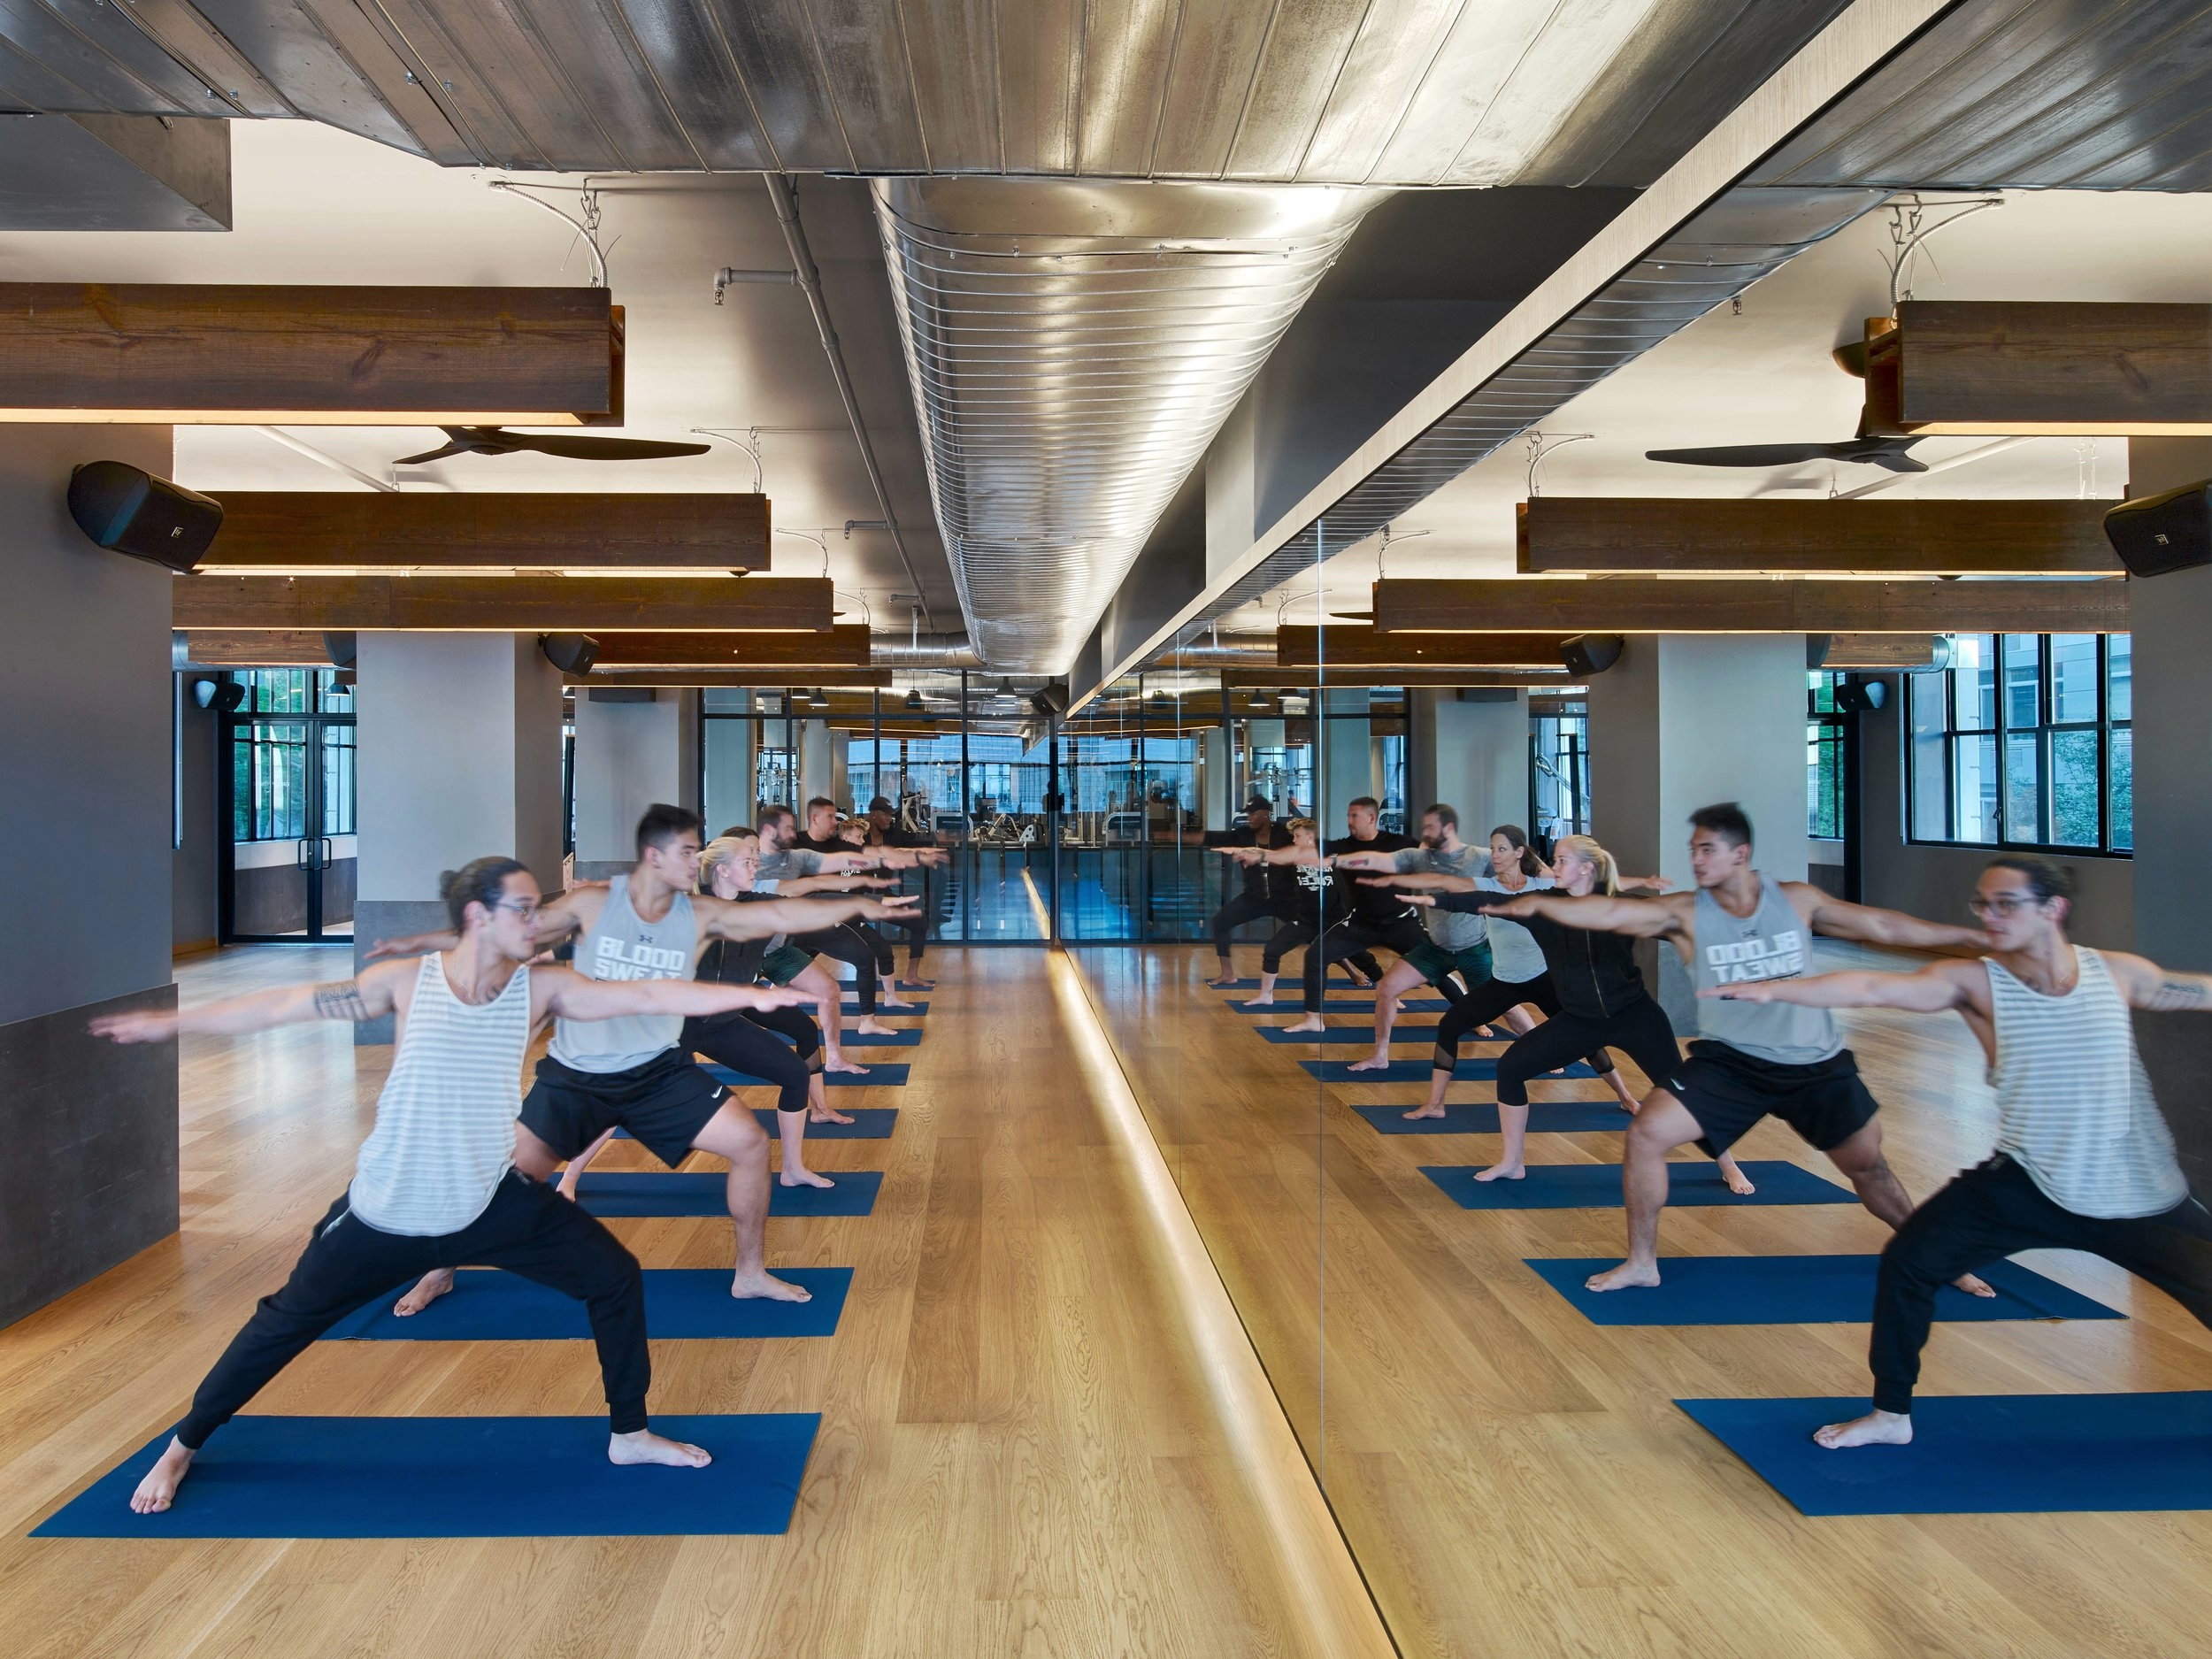 Equinox Dumbo Yoga Studio